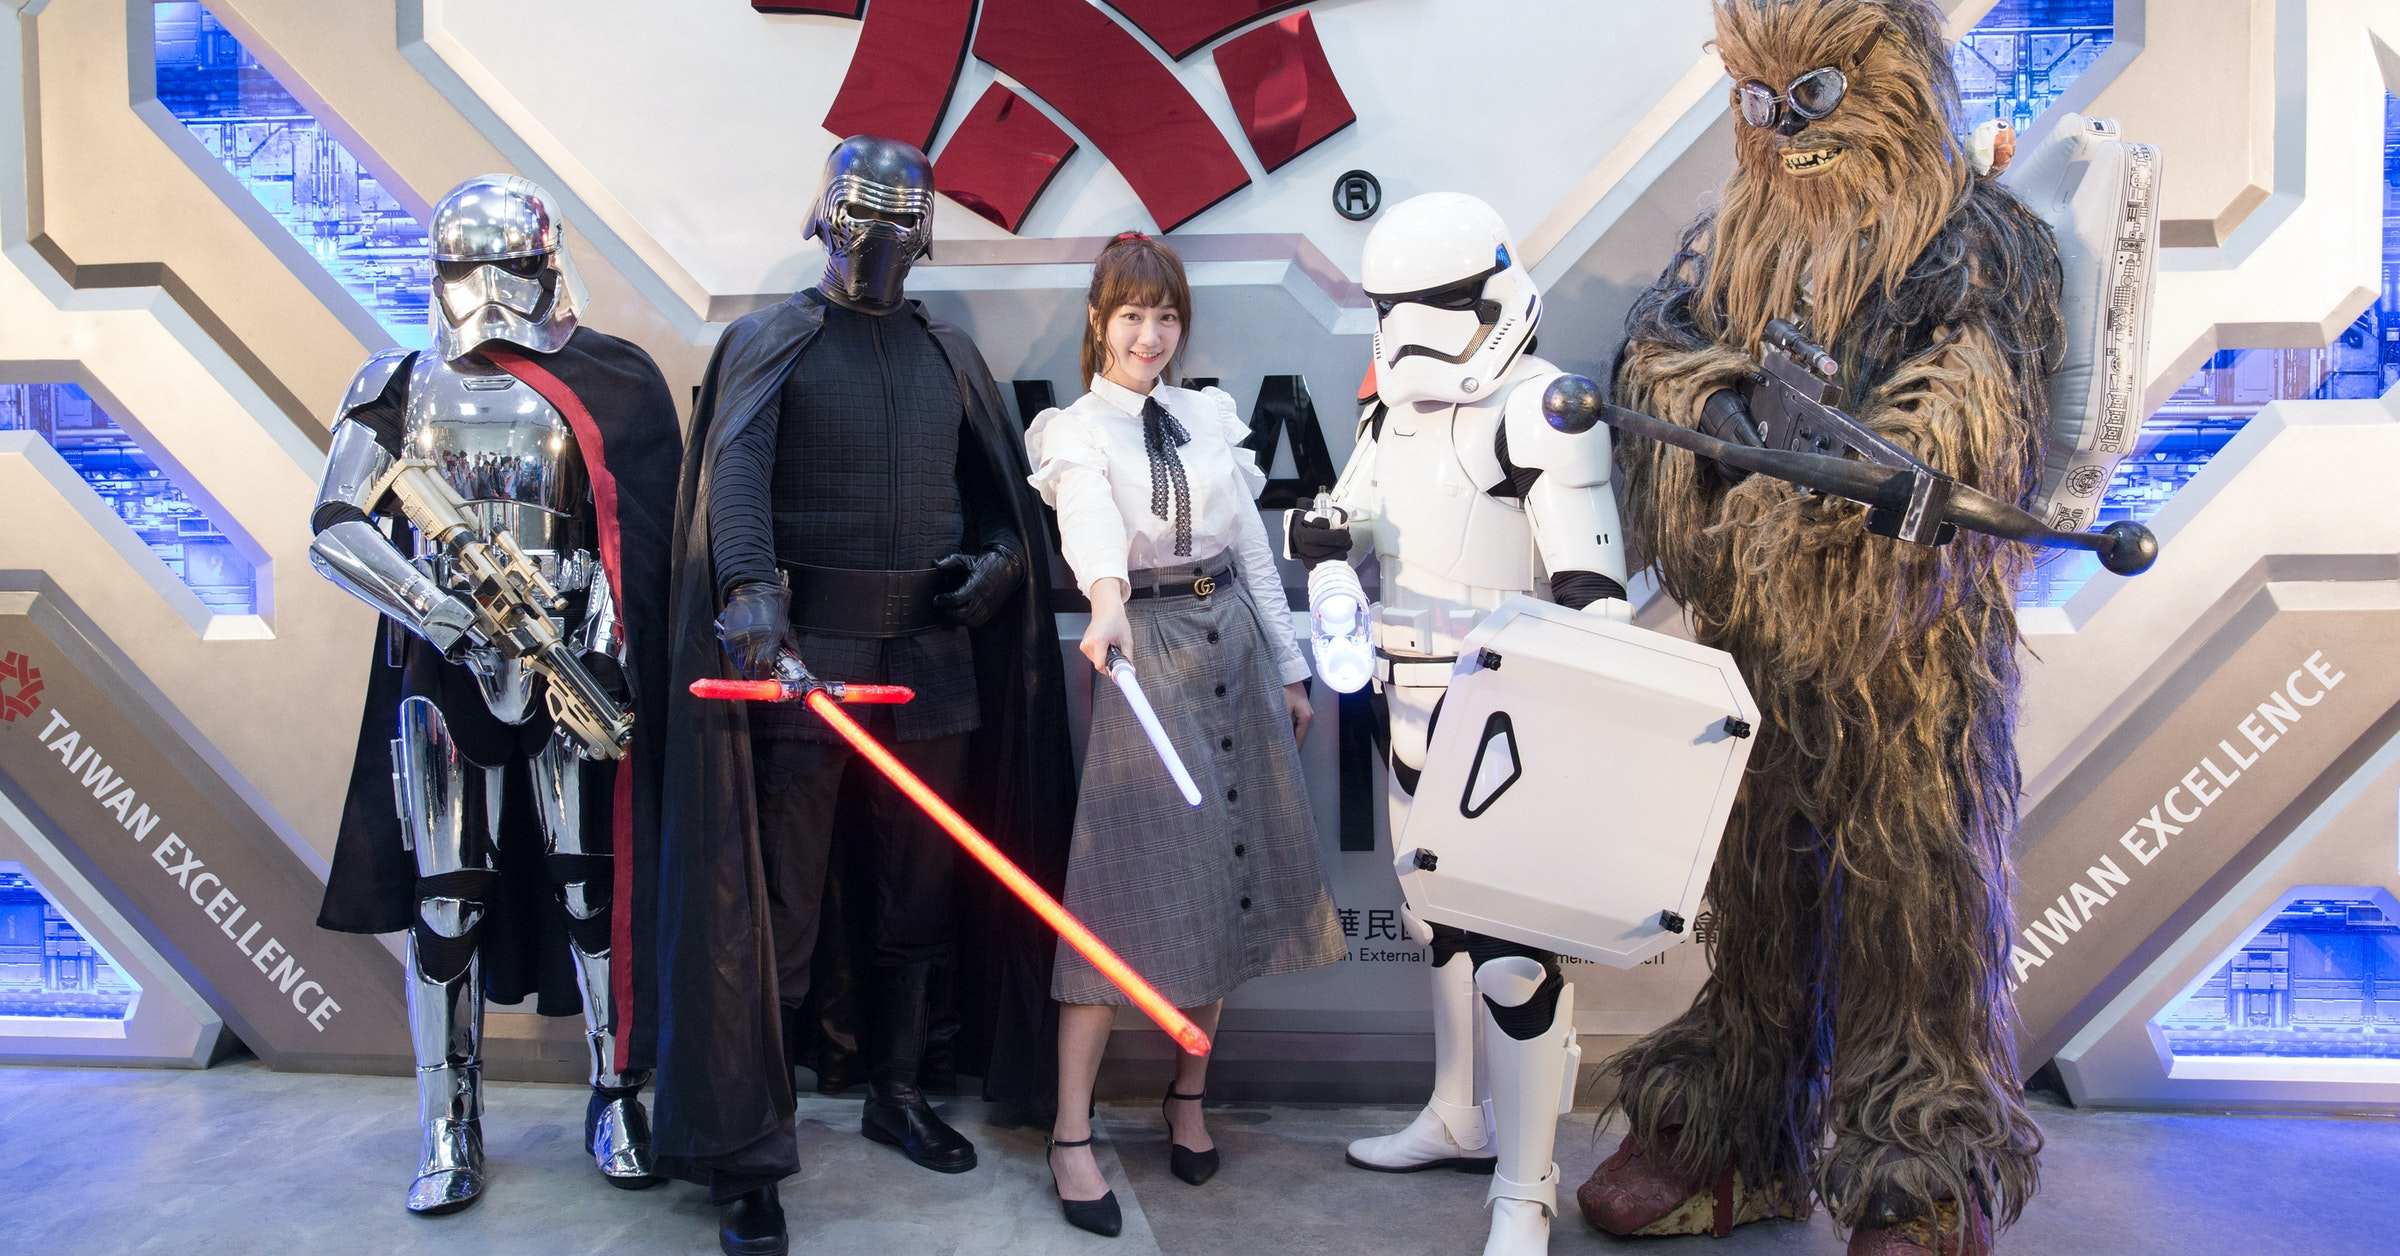 Costume, costume, Chewbacca, Darth vader, Costume, Fictional character, Cosplay, Supervillain, Fiction